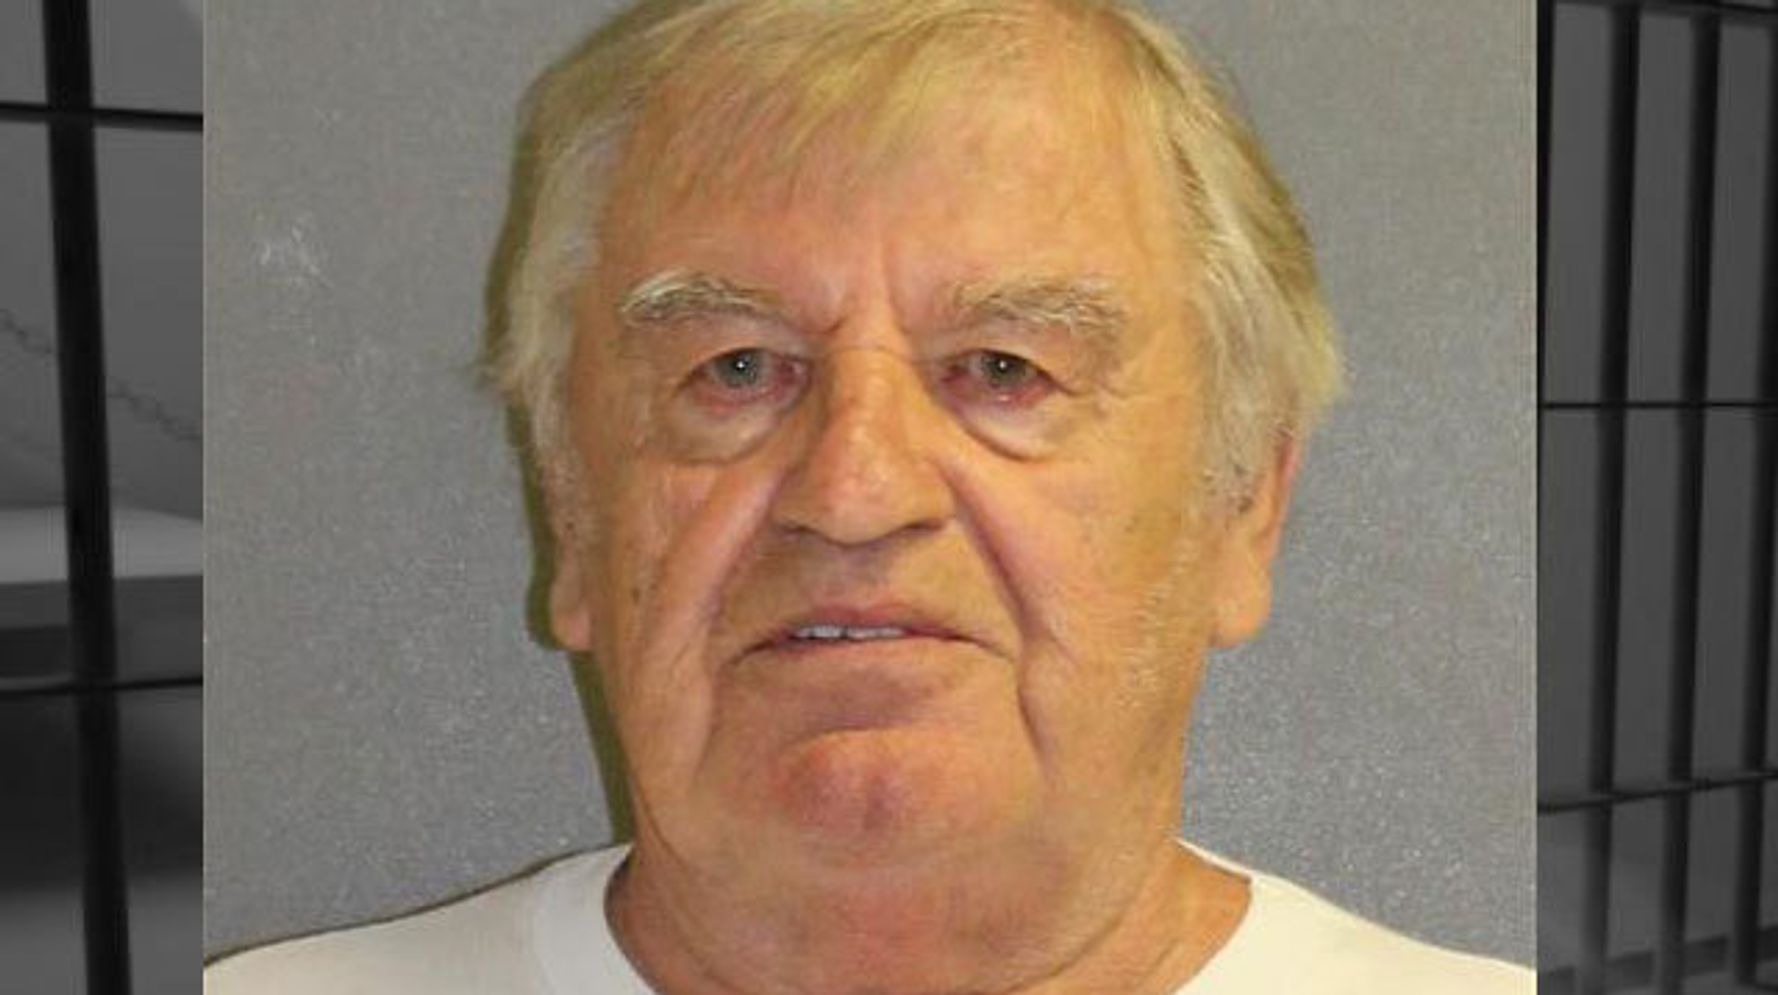 Florida Man Attempts To Buy 8-Year-Old For $200,000 At